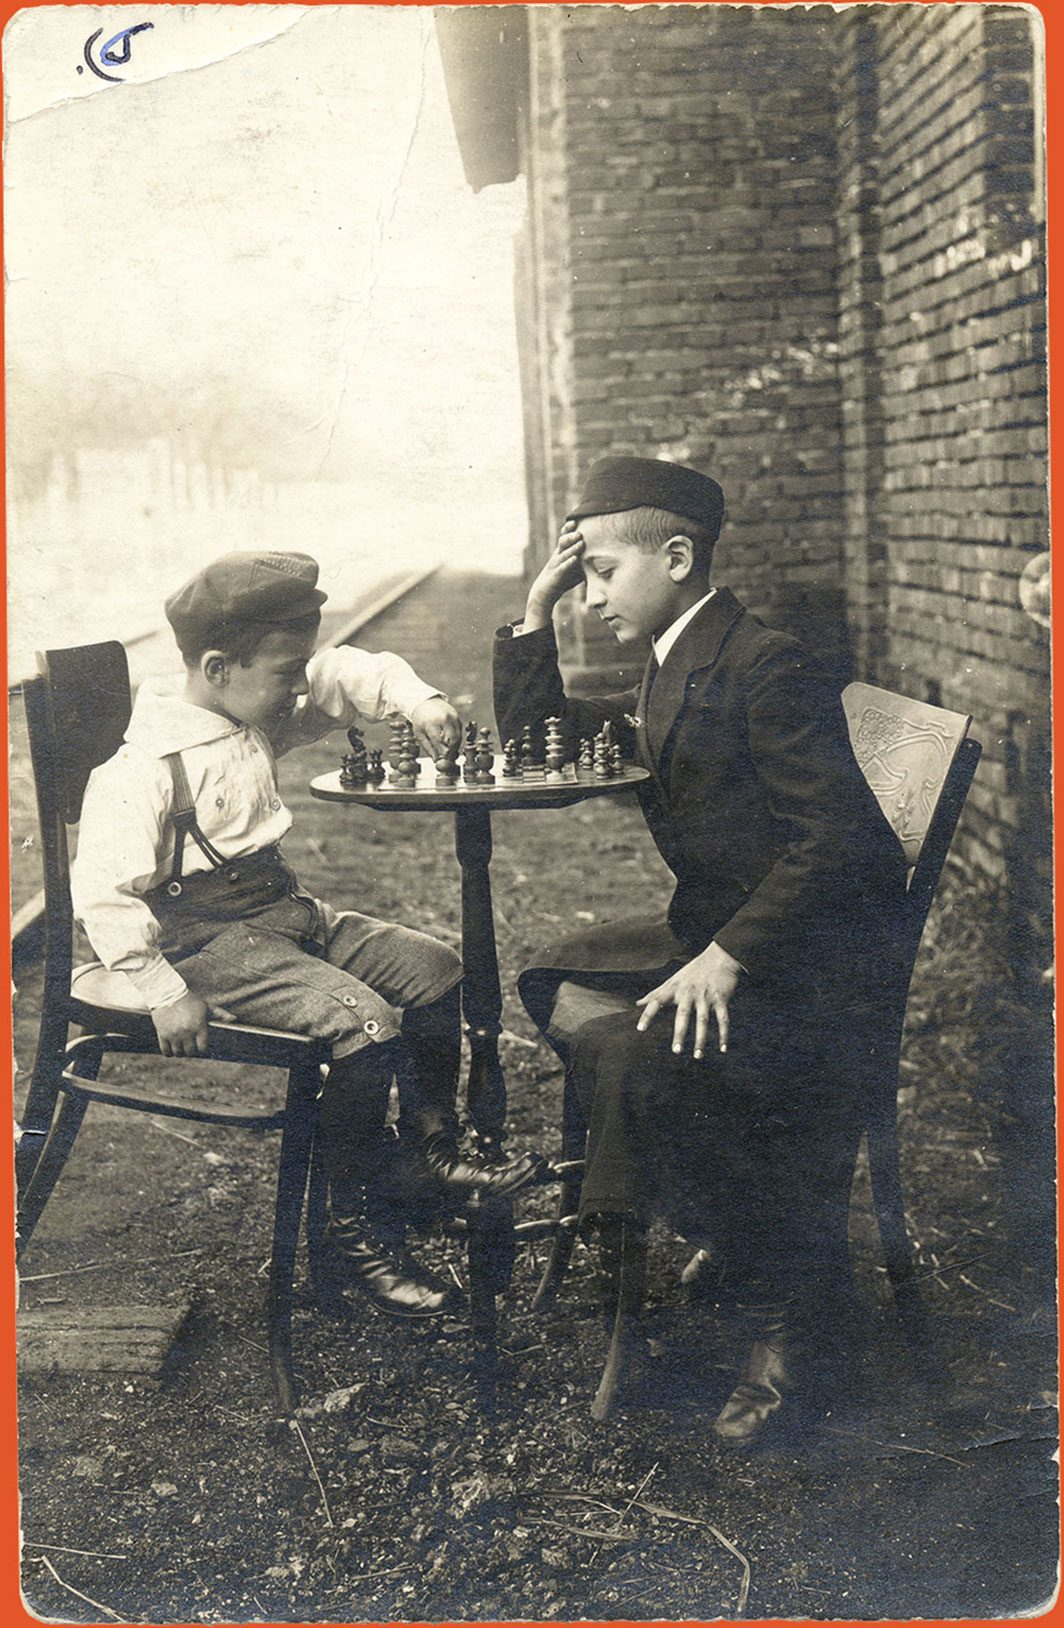 The boys sitting at a table and playing chess